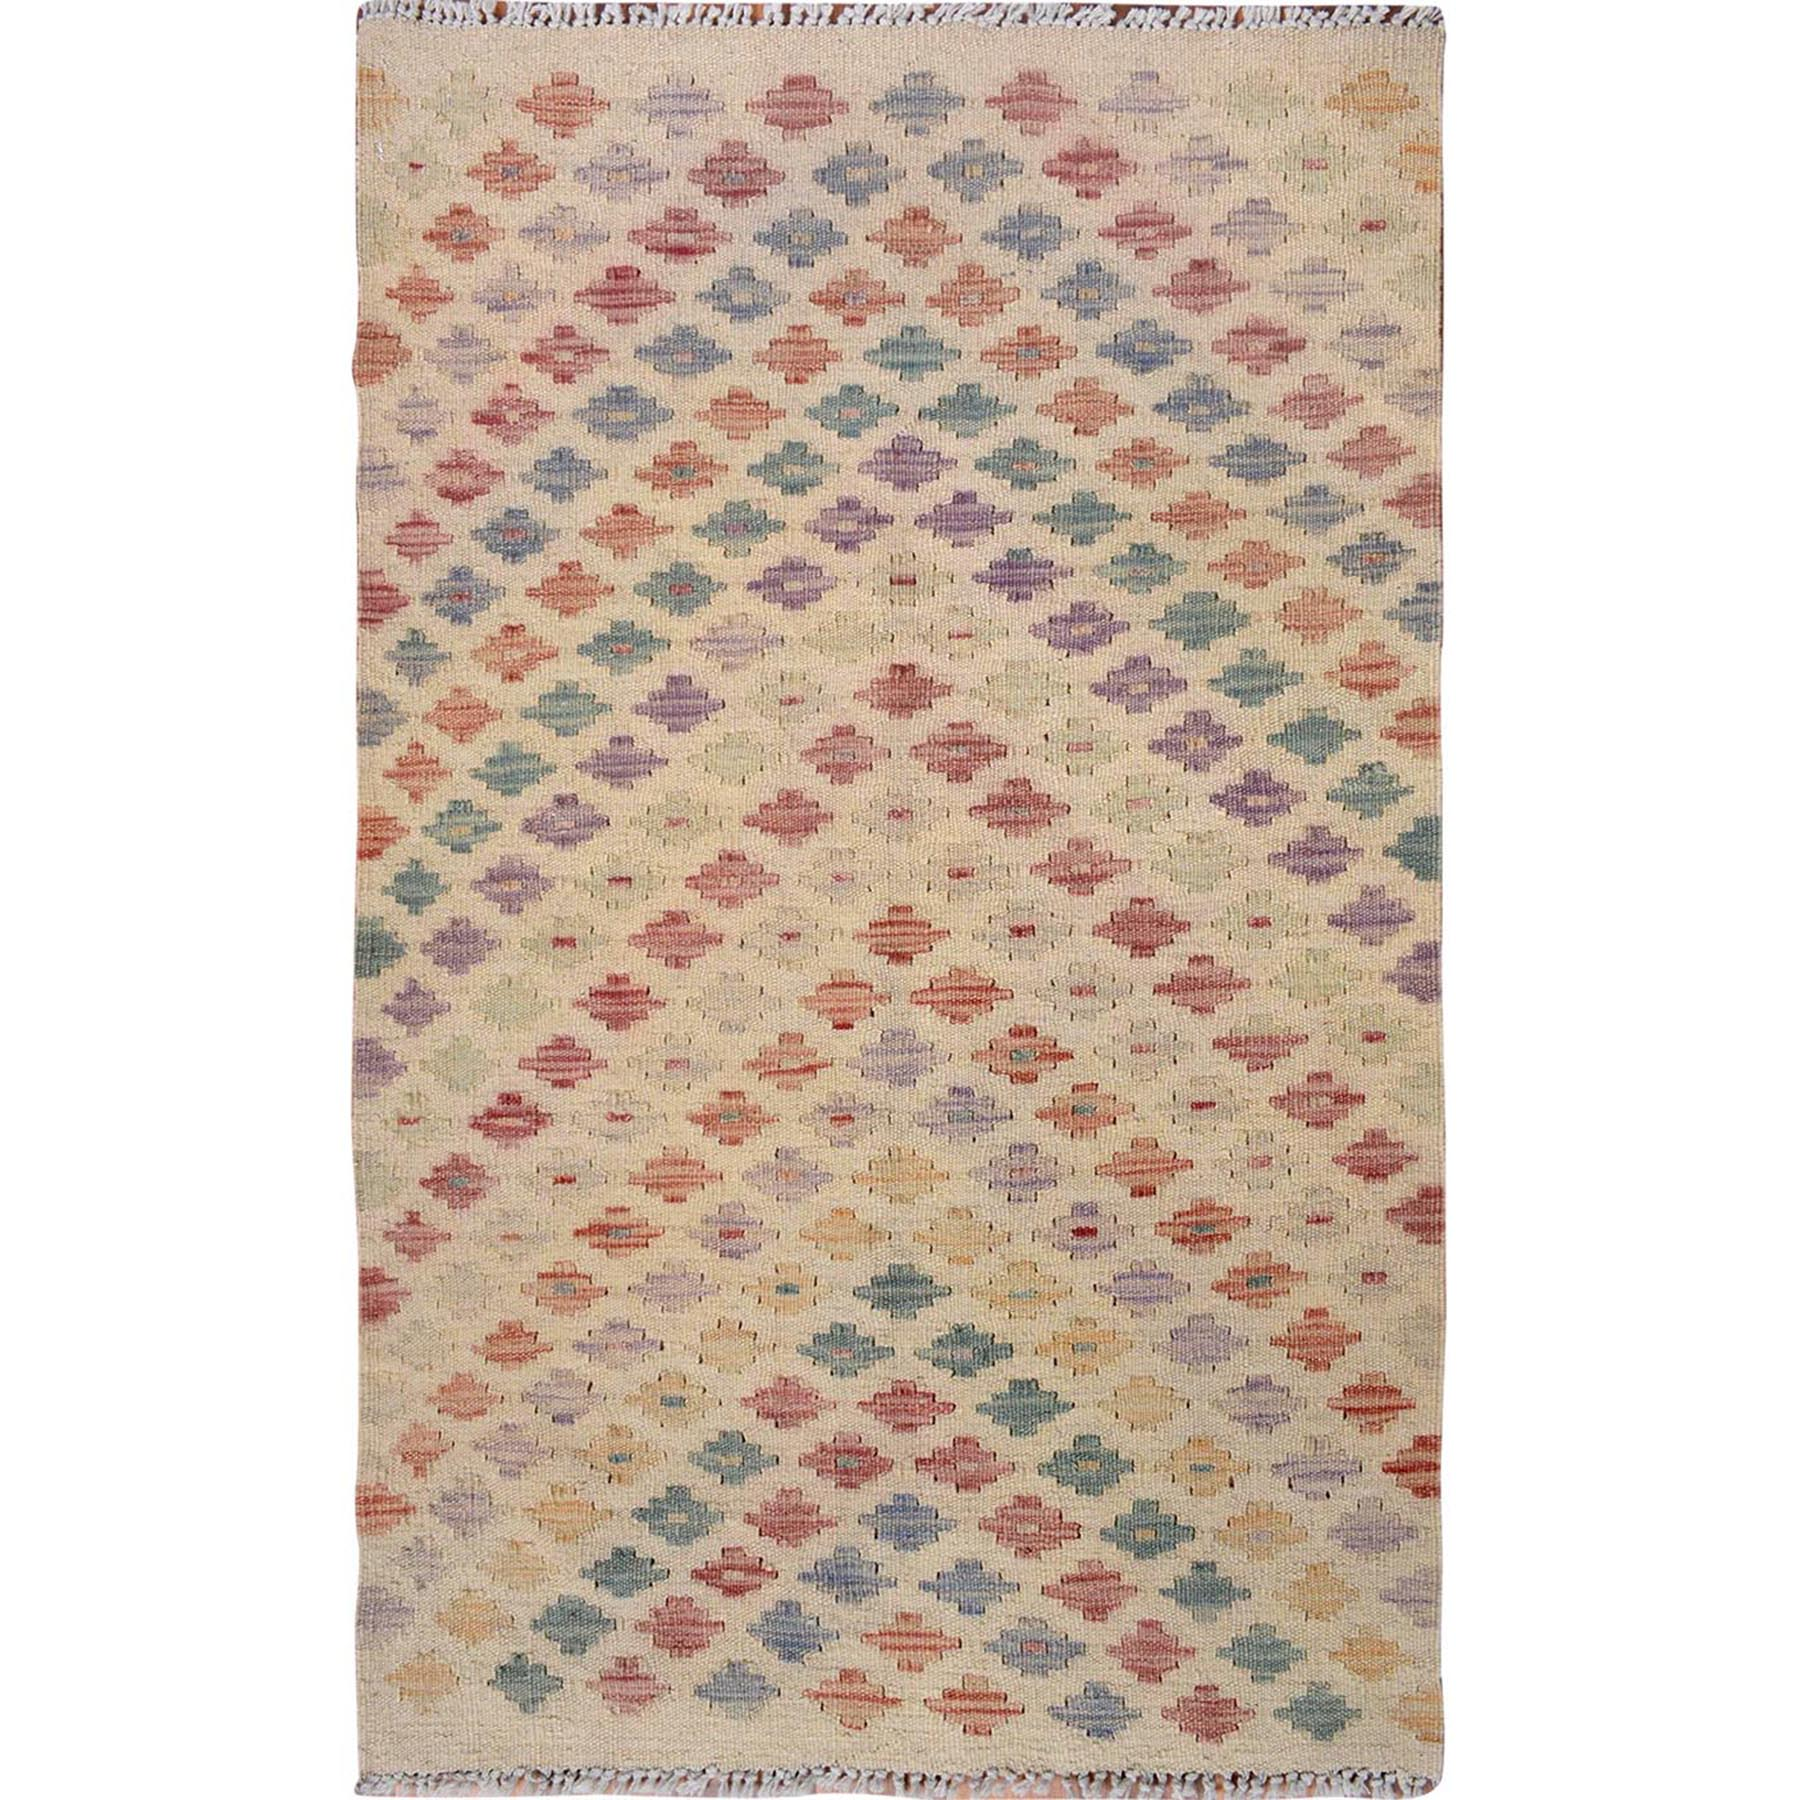 "2'4""x4'1"" Colorful Reversible Afghan Kilim Flat weave Pure Wool Hand Woven Oriental Rug"